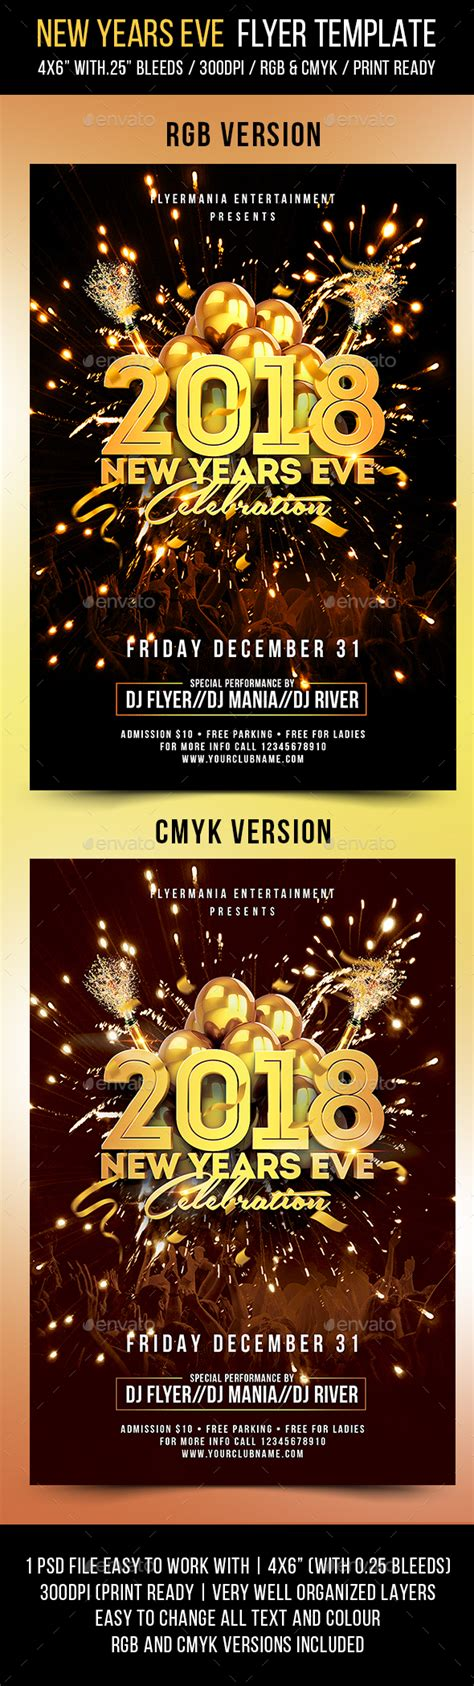 New Years Eve Flyer Template By Flyermania Graphicriver New Years Flyer Template